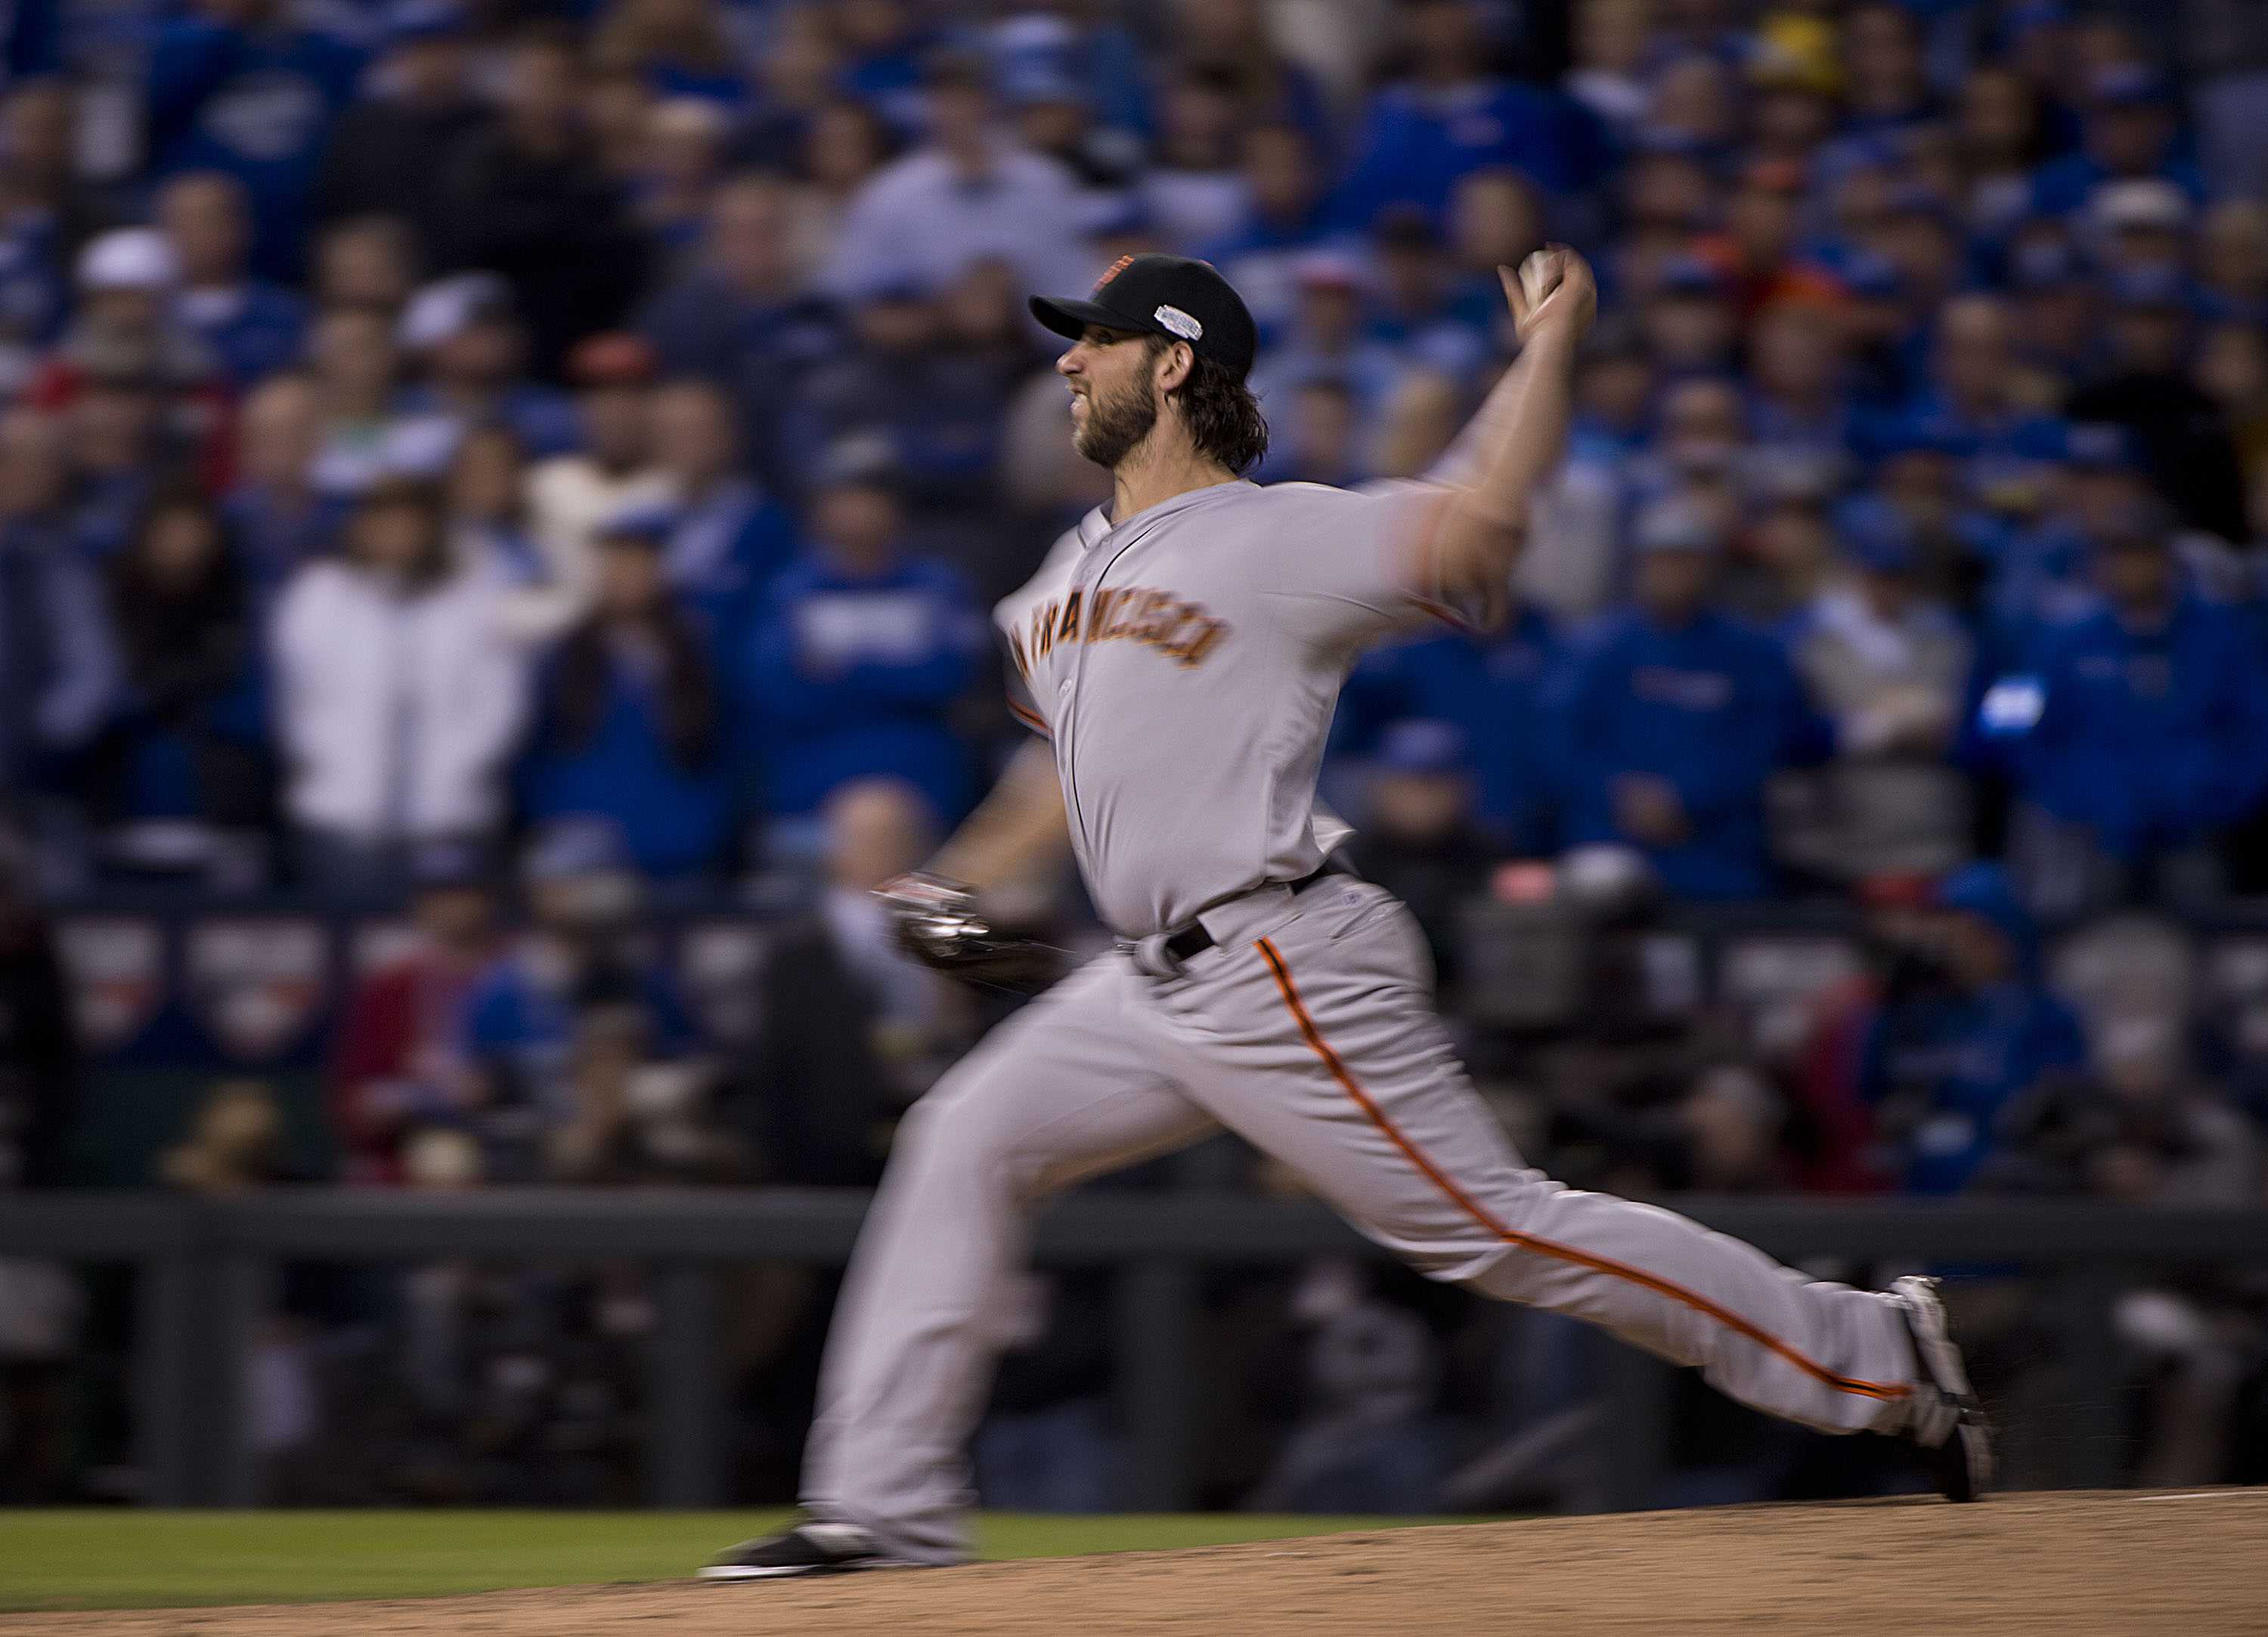 Madison Bumgarner came out of the bullpen to pitch the San Francisco Giants to victory against the Kansas City Royals in Game 7 of the 2014 World Series. The Giants won, 3-2, to capture the Series title. (TNS)